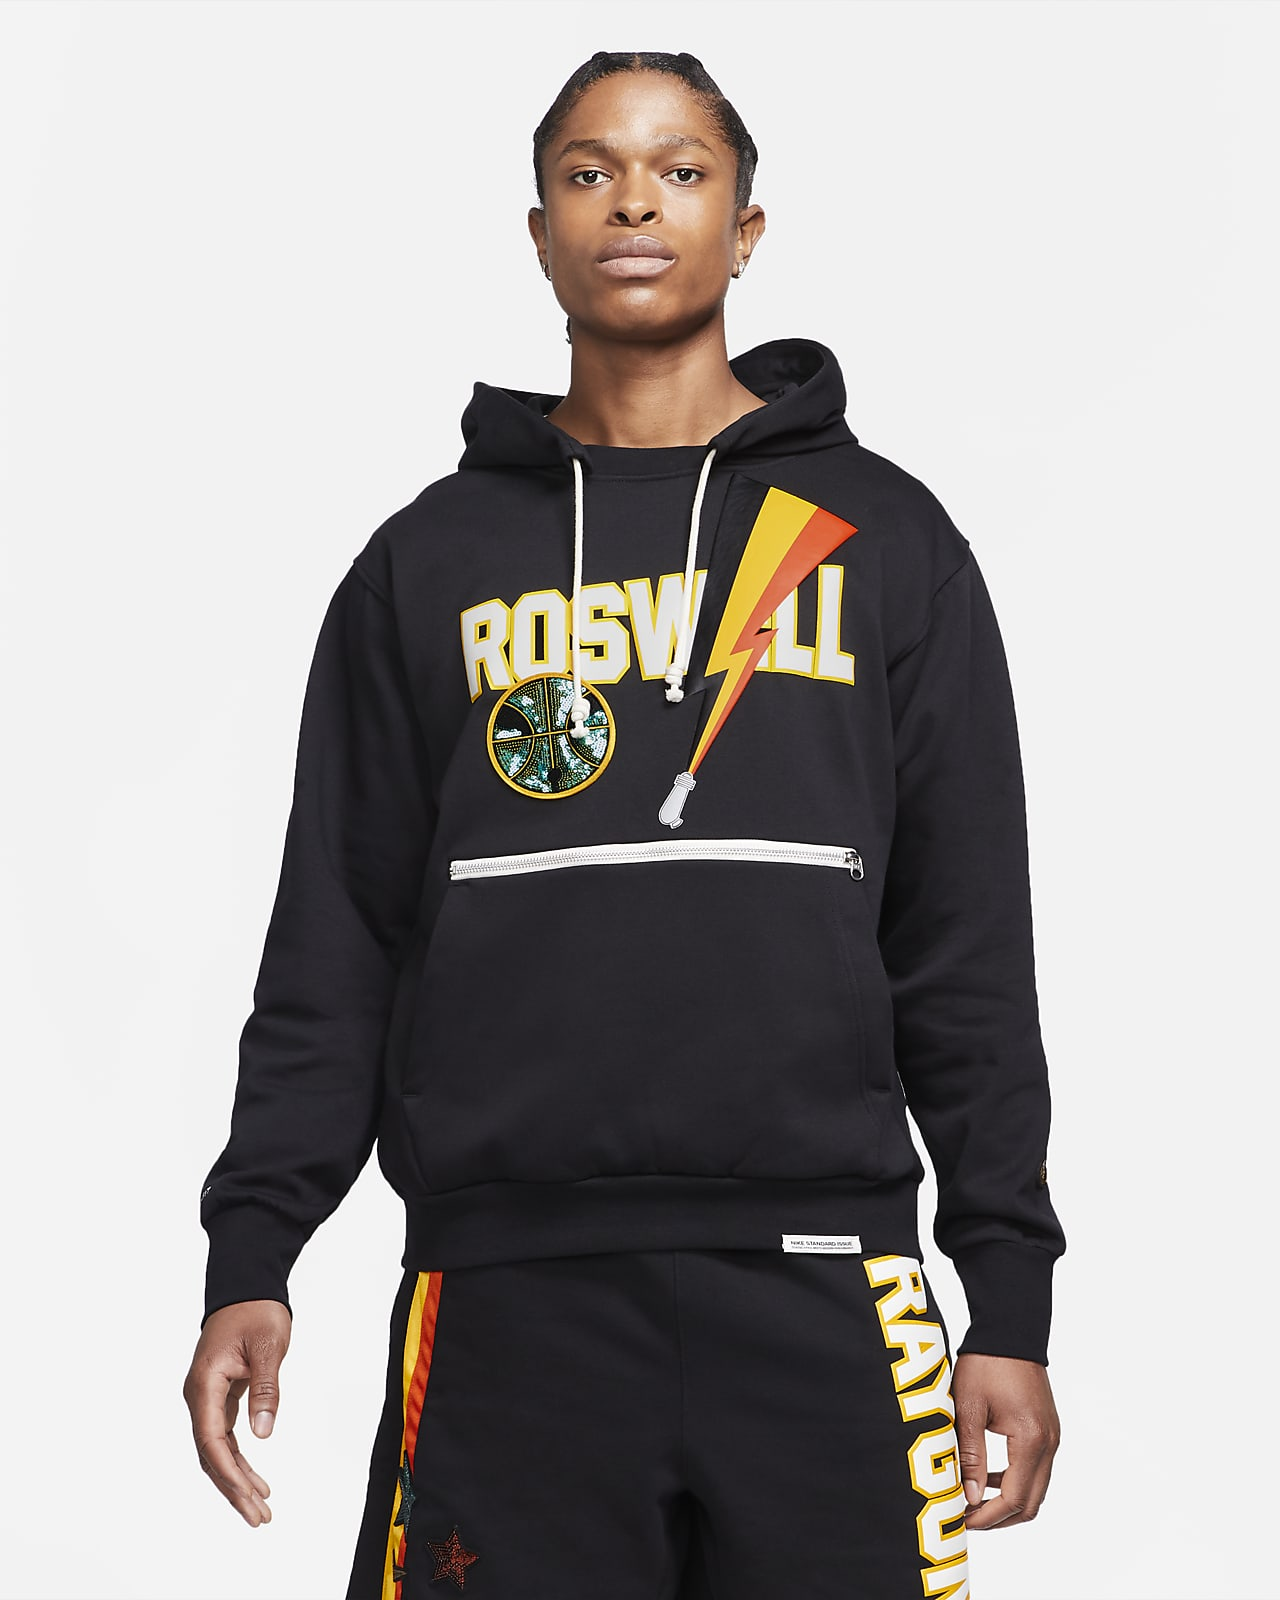 Nike Dri-FIT Rayguns Men's Premium Basketball Hoodie